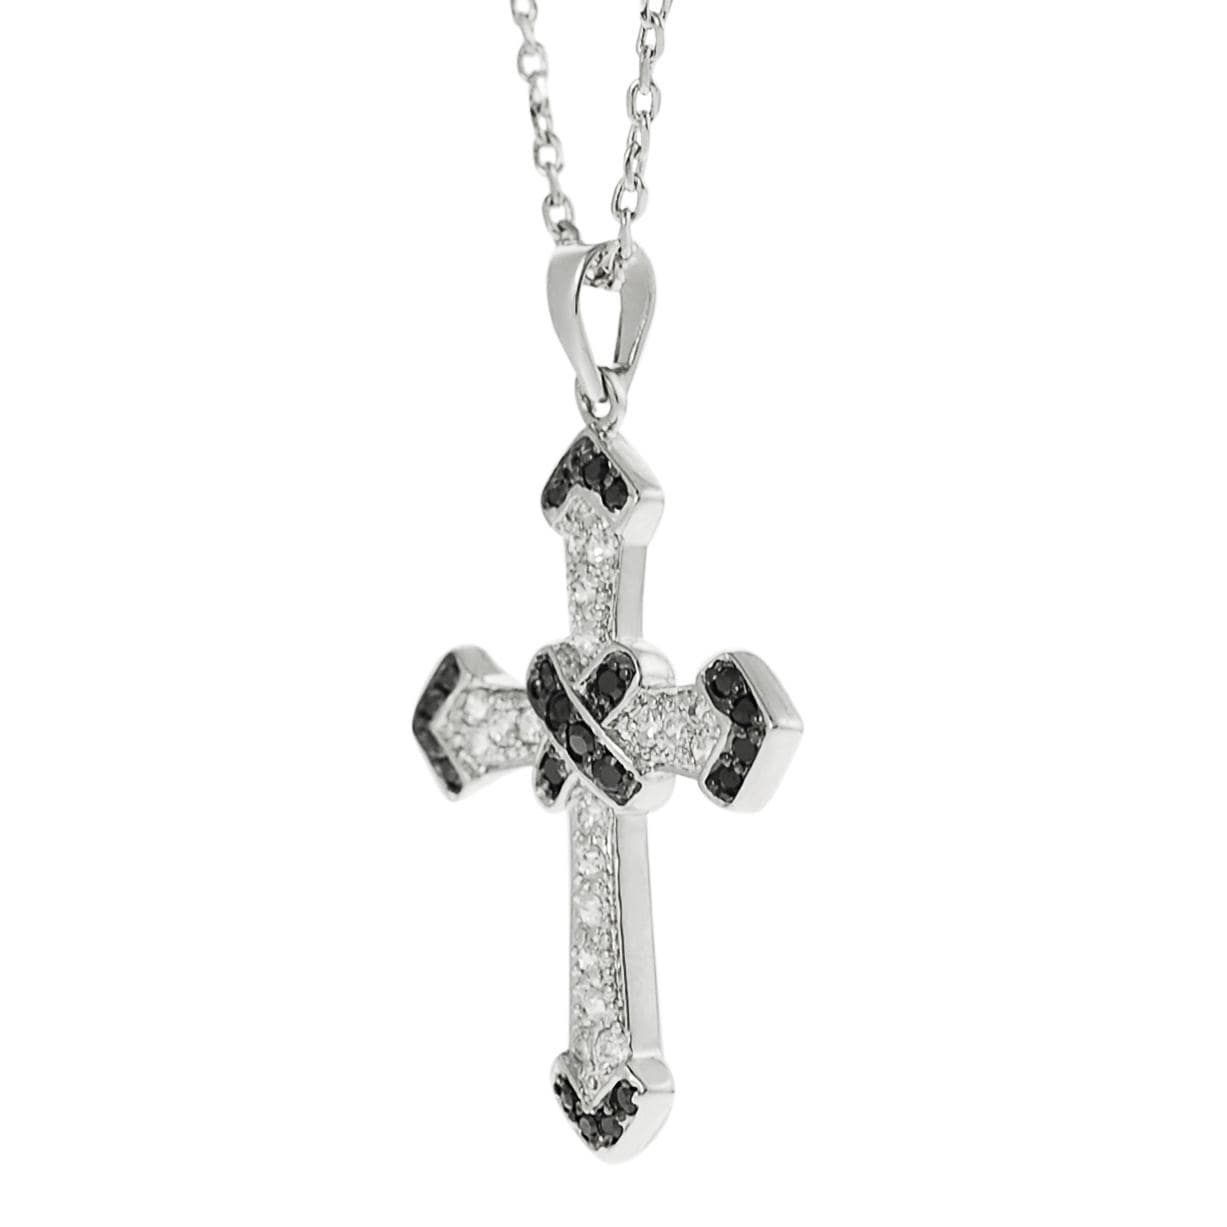 Journee Collection Silvertone Black and White CZ Cross Necklace - Thumbnail 1